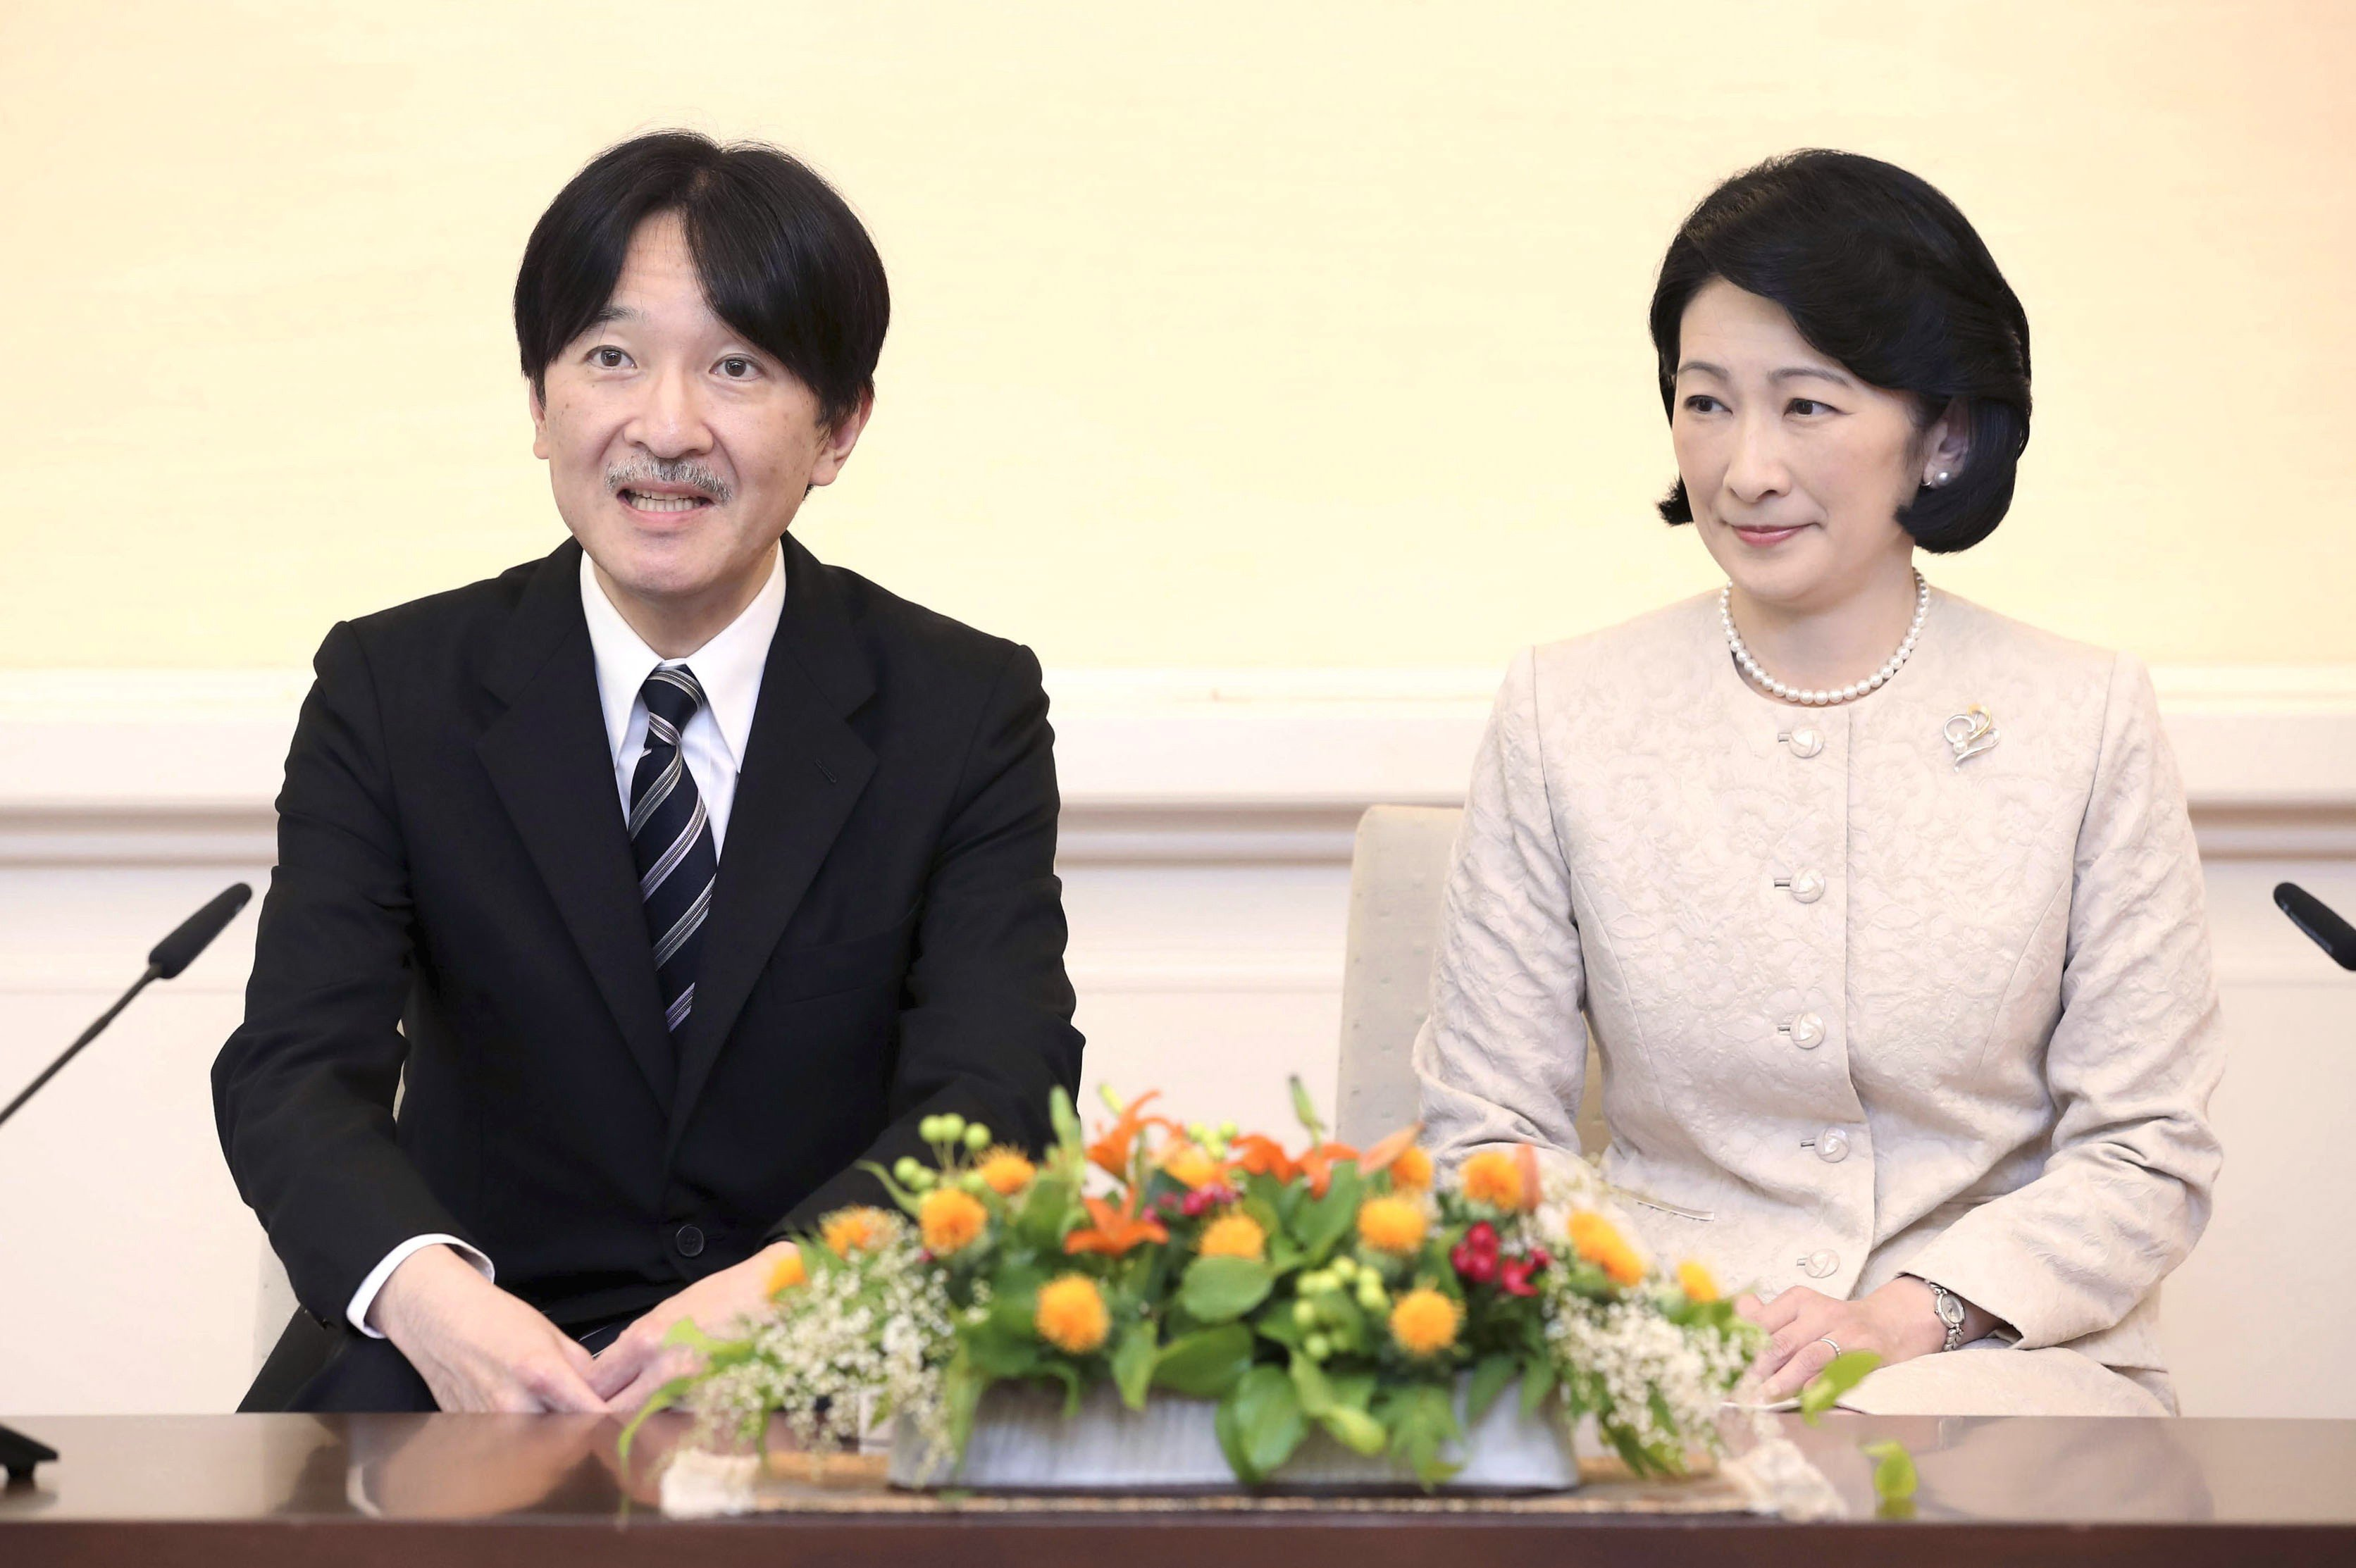 What do Japanese Crown Prince Akishino's complaints reveal about